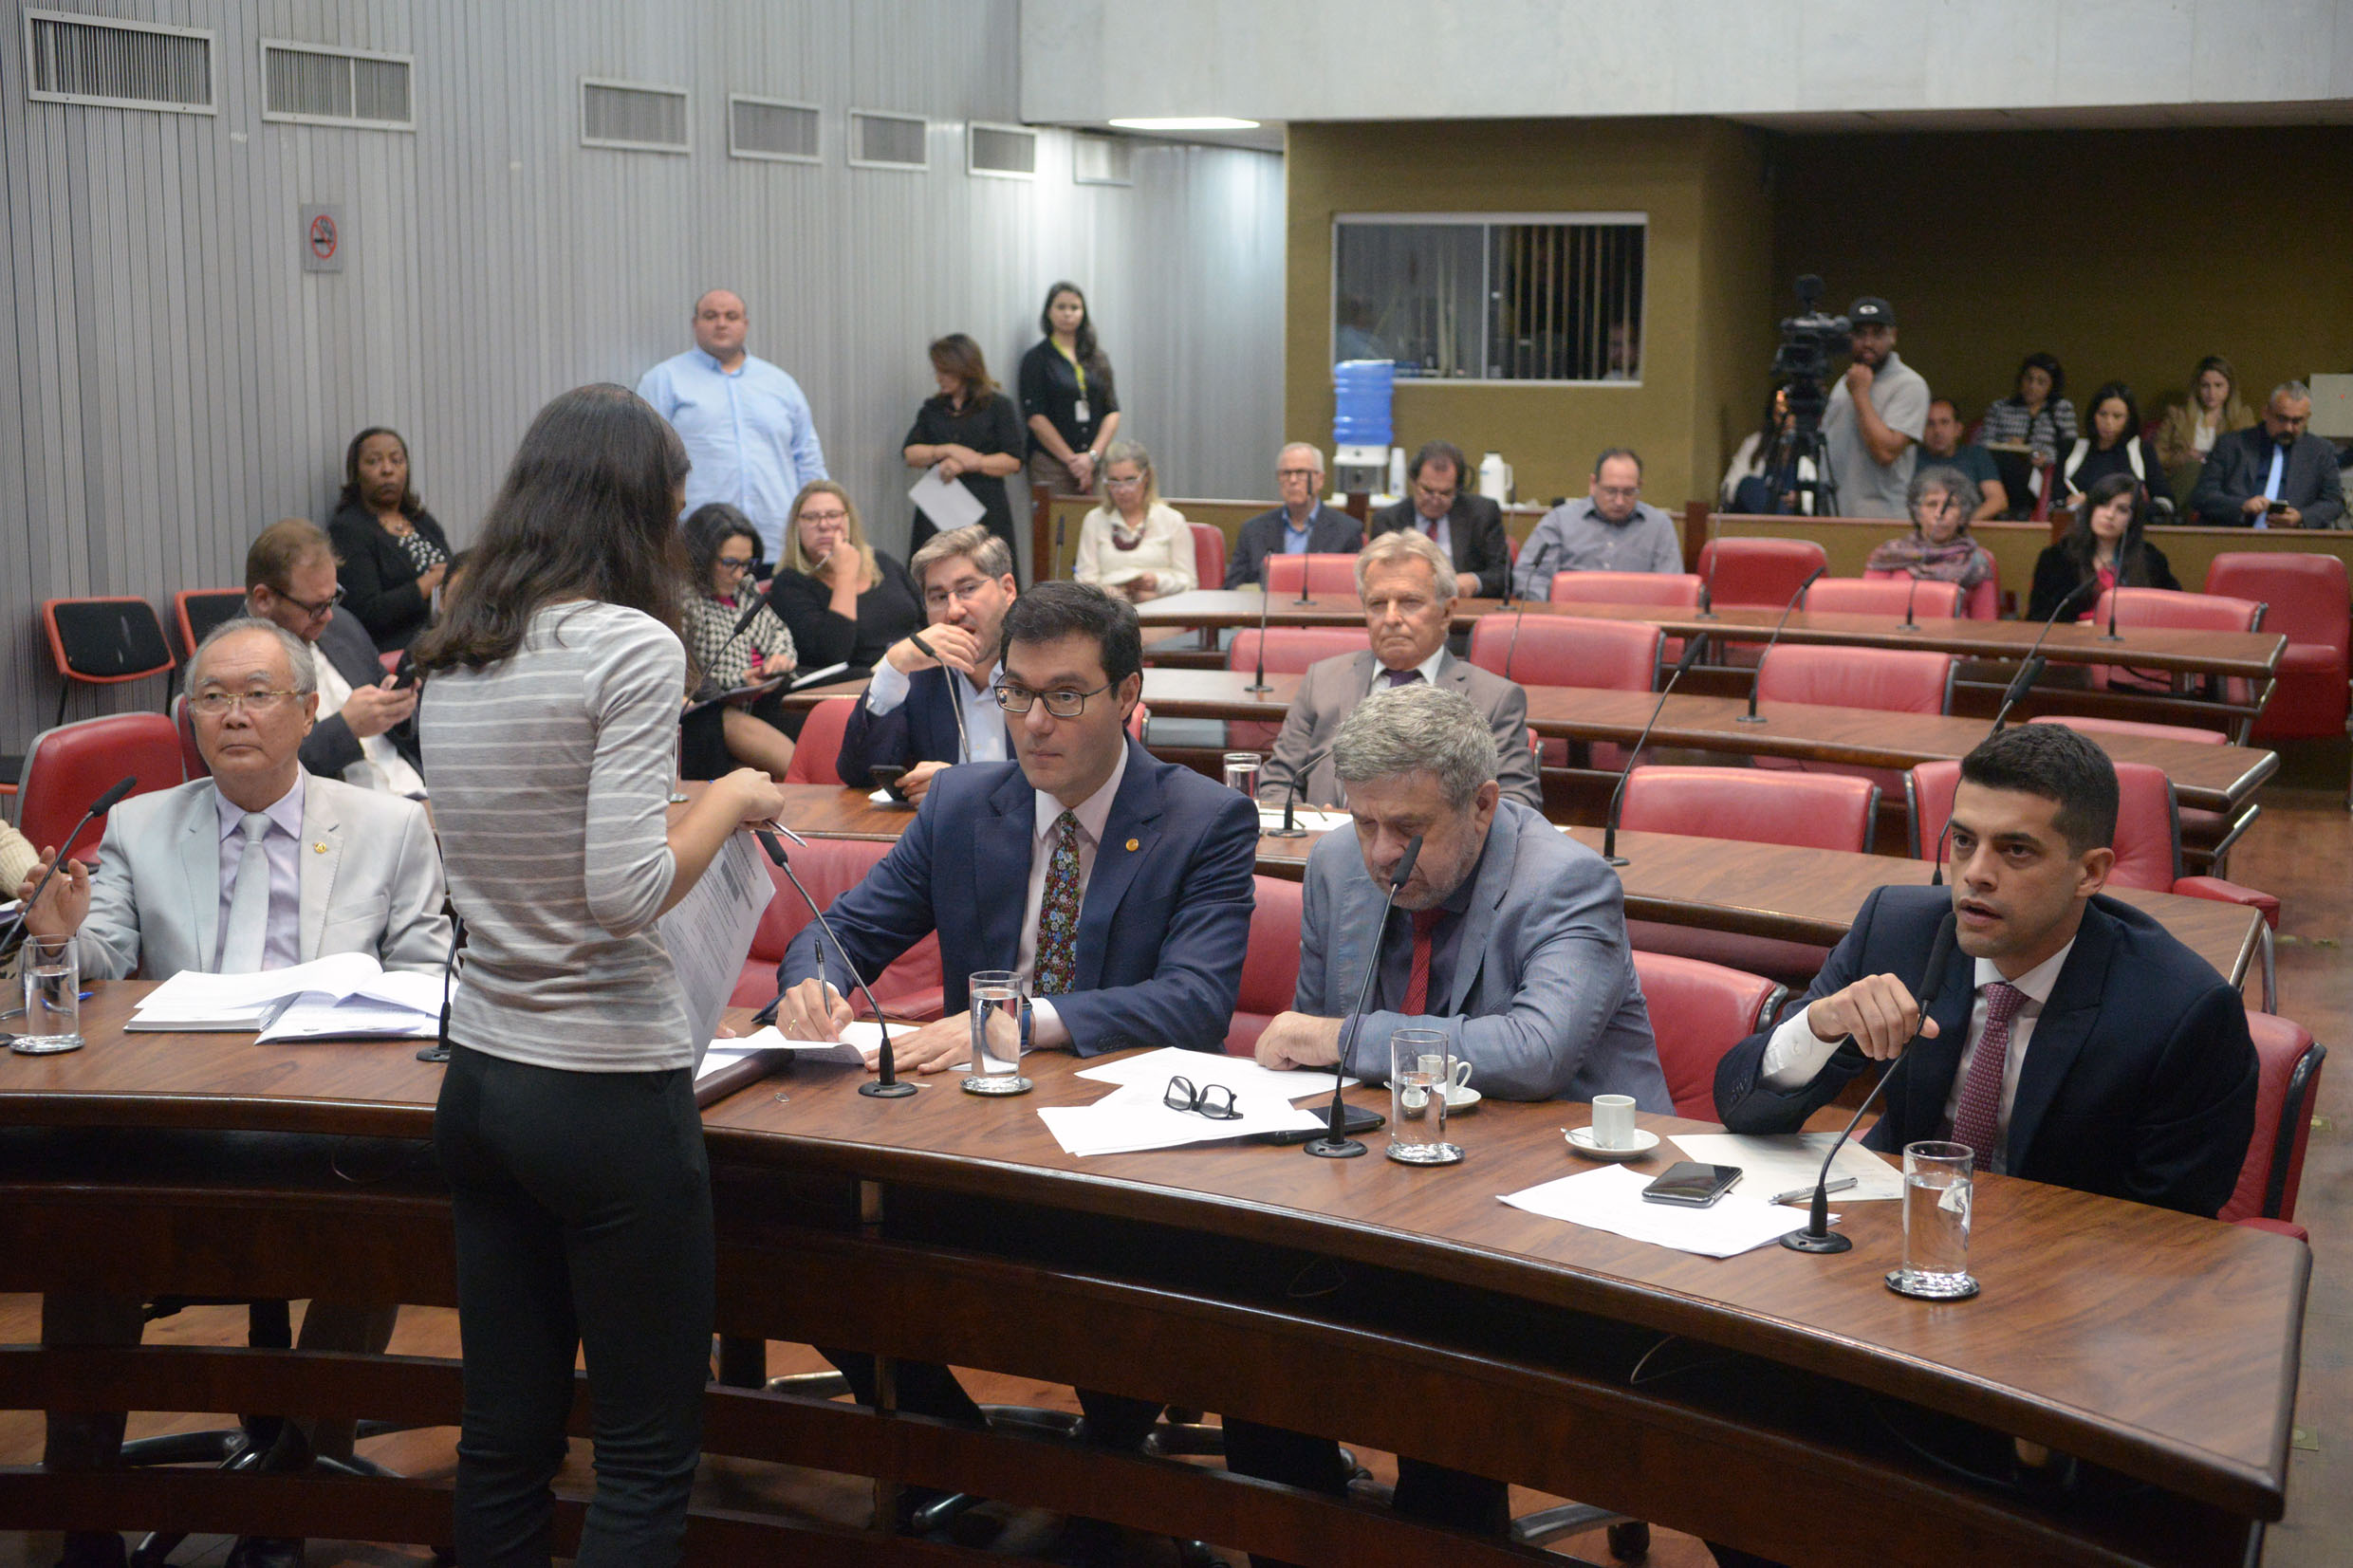 Parlamentares na comissão<a style='float:right' href='https://www3.al.sp.gov.br/repositorio/noticia/N-08-2019/fg237902.jpg' target=_blank><img src='/_img/material-file-download-white.png' width='14px' alt='Clique para baixar a imagem'></a>